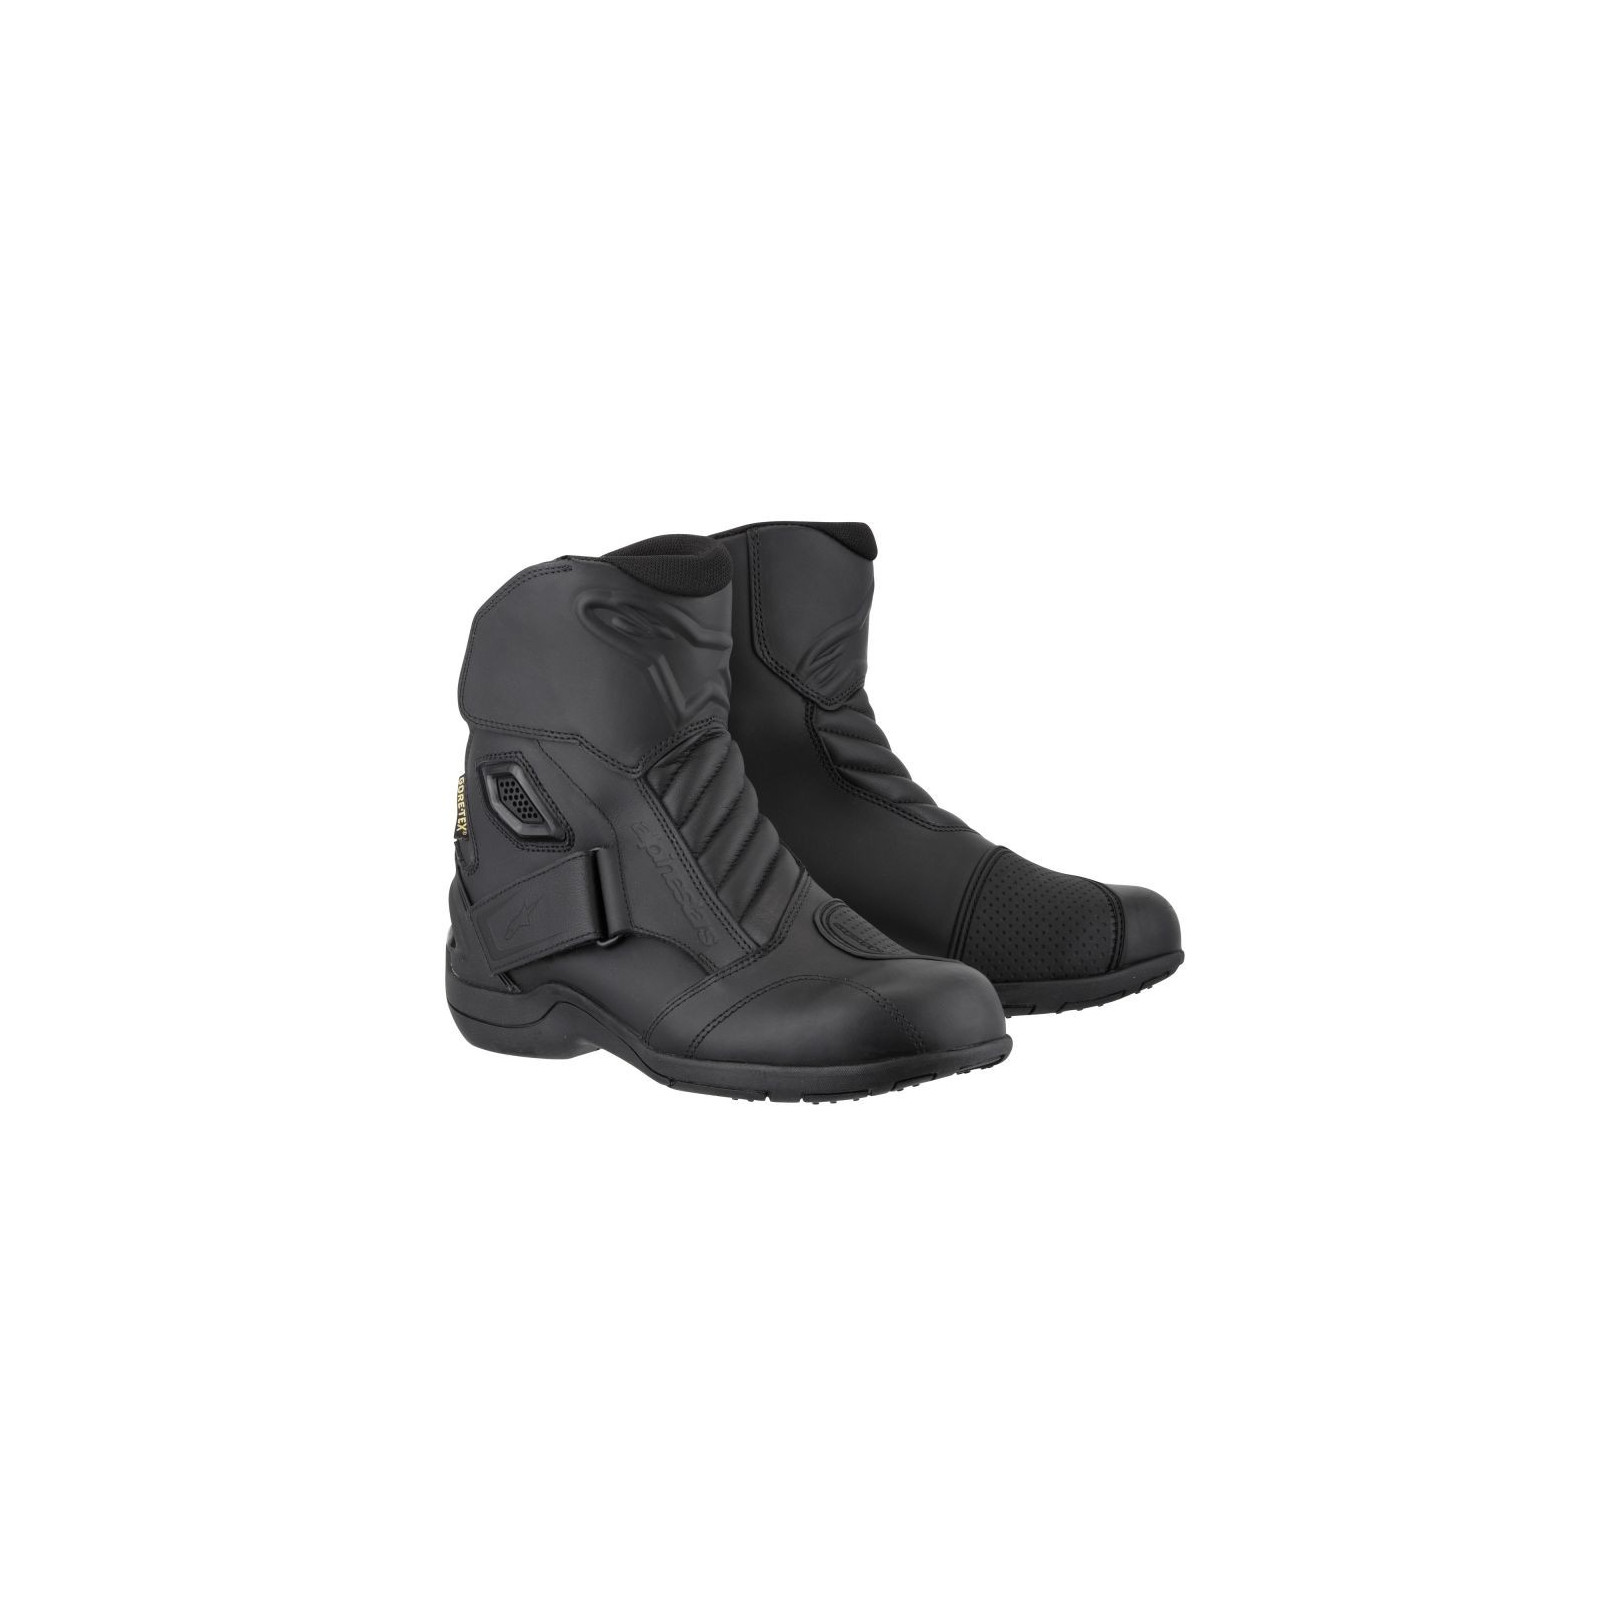 Bottes Alpinestars New Land Gore-tex noir